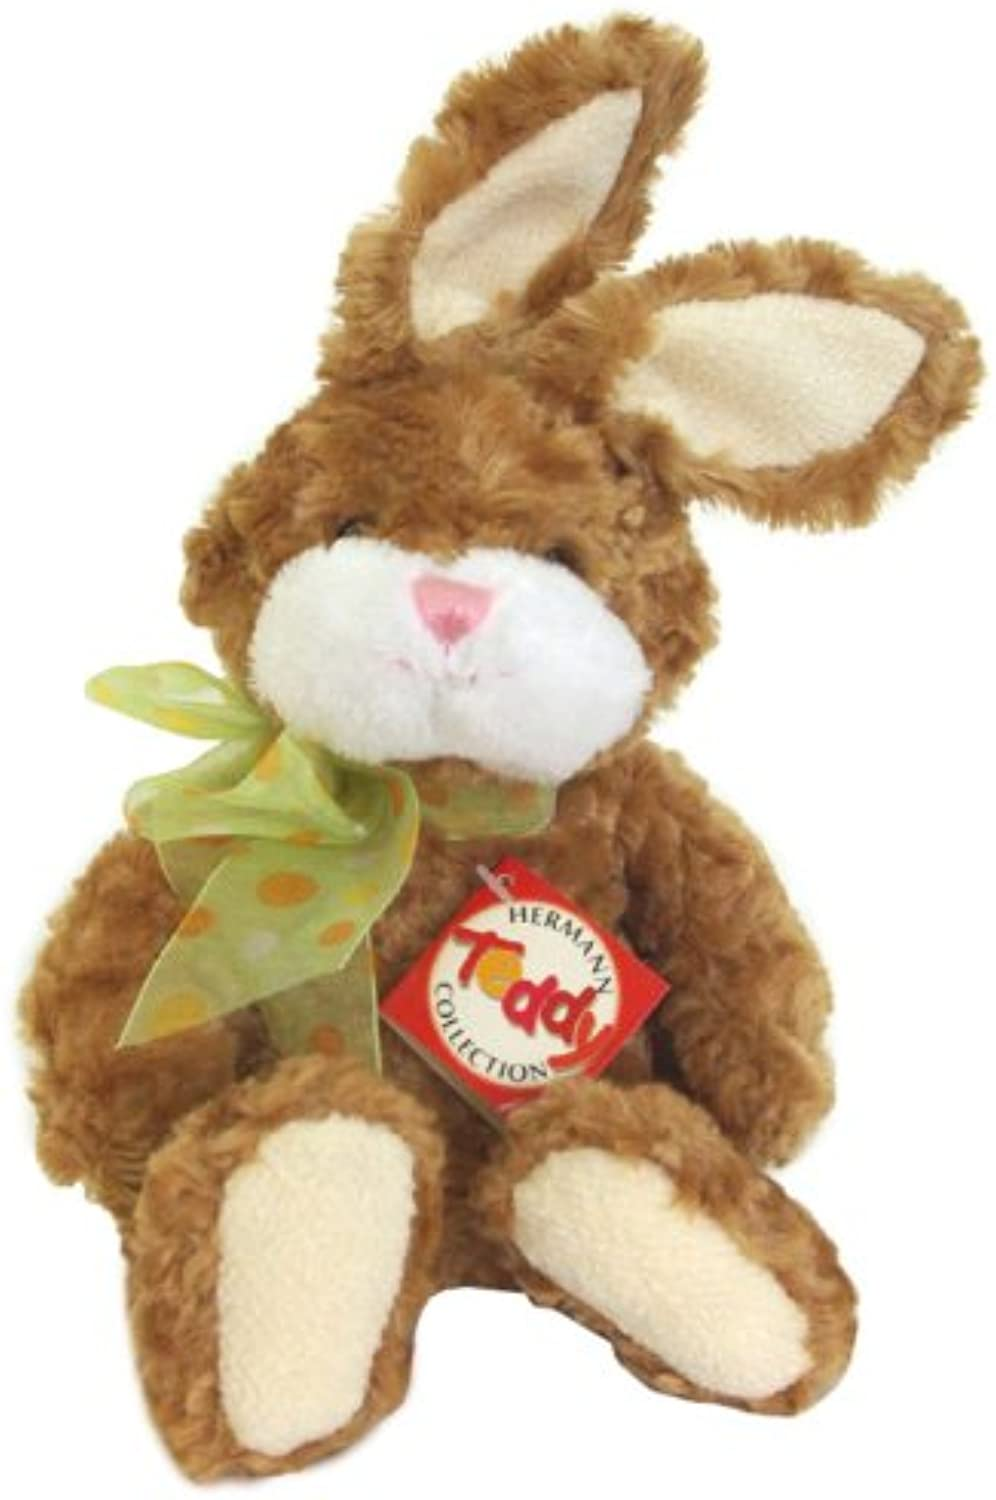 ventas calientes Herman Herman Herman teddy rabbit marrón 25cm (japan import)  Más asequible